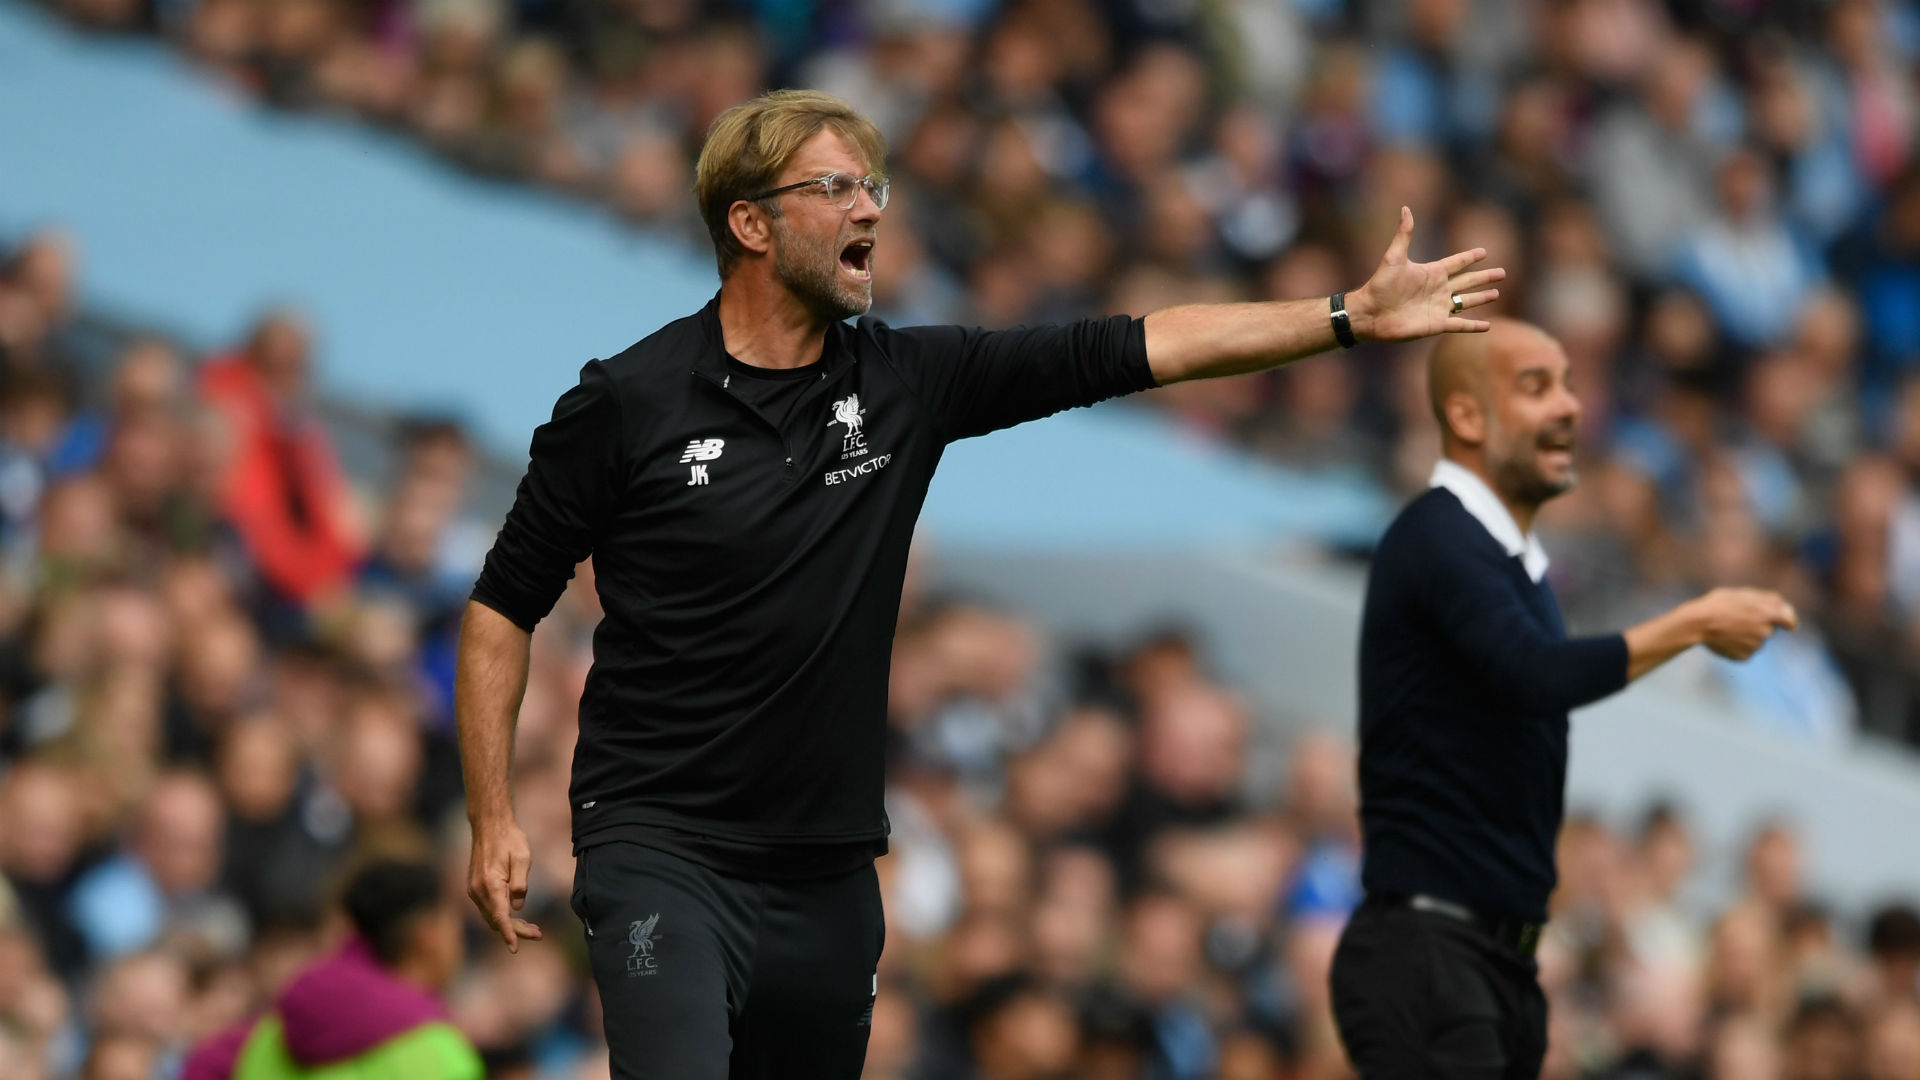 Man City defeat 10-man Liverpool 5-0